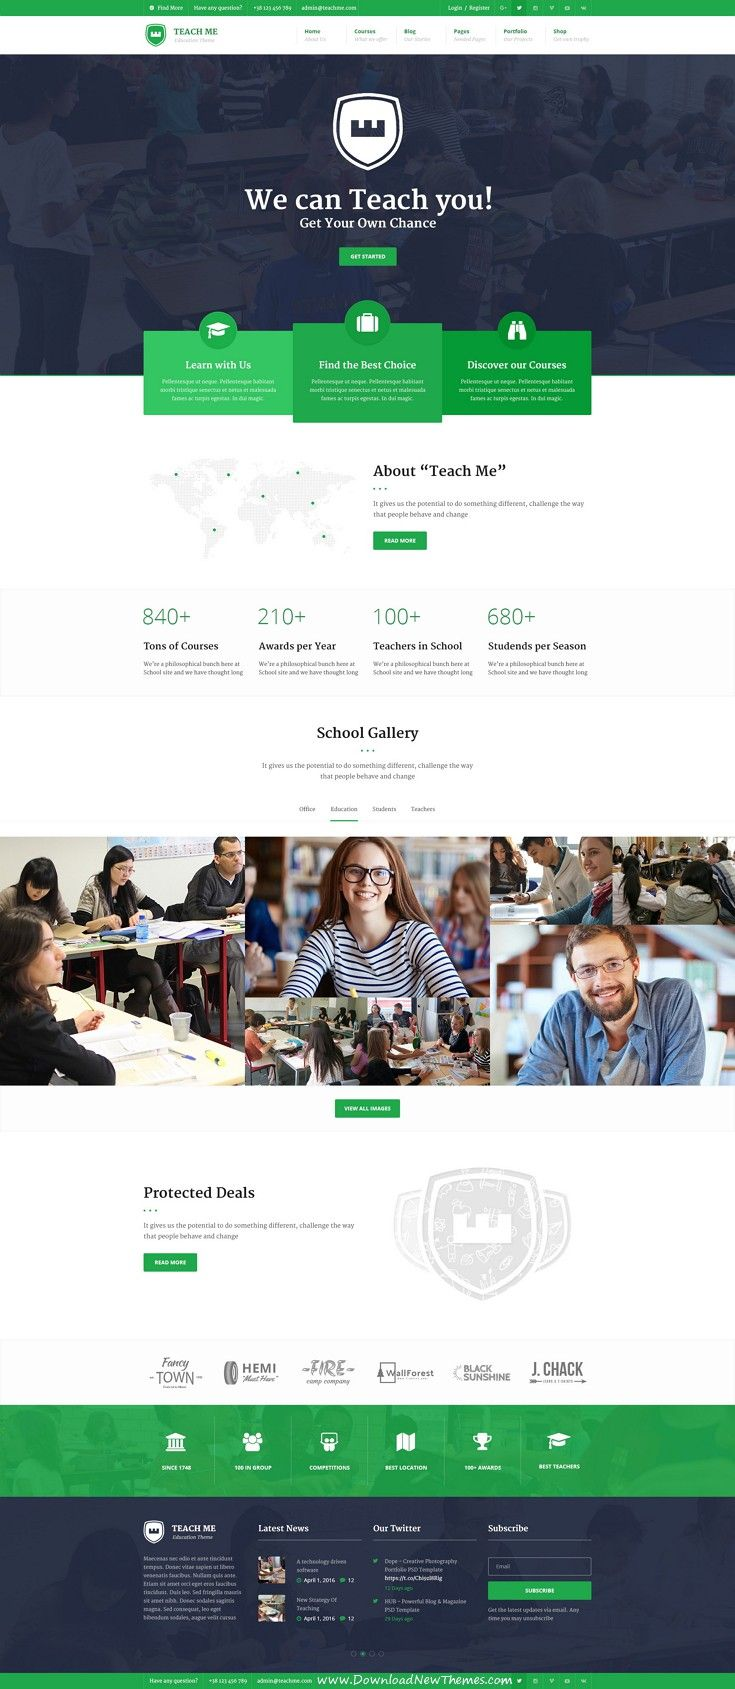 Teach Me PSD Template ready for any education purpose or your own website solution. This Theme goes with 5 Different Homepages, Blog layouts, WooCommerce, bbPress Forum, Contact Us and About Us Pages. Widgets and Needed Pages Ready. #edutech